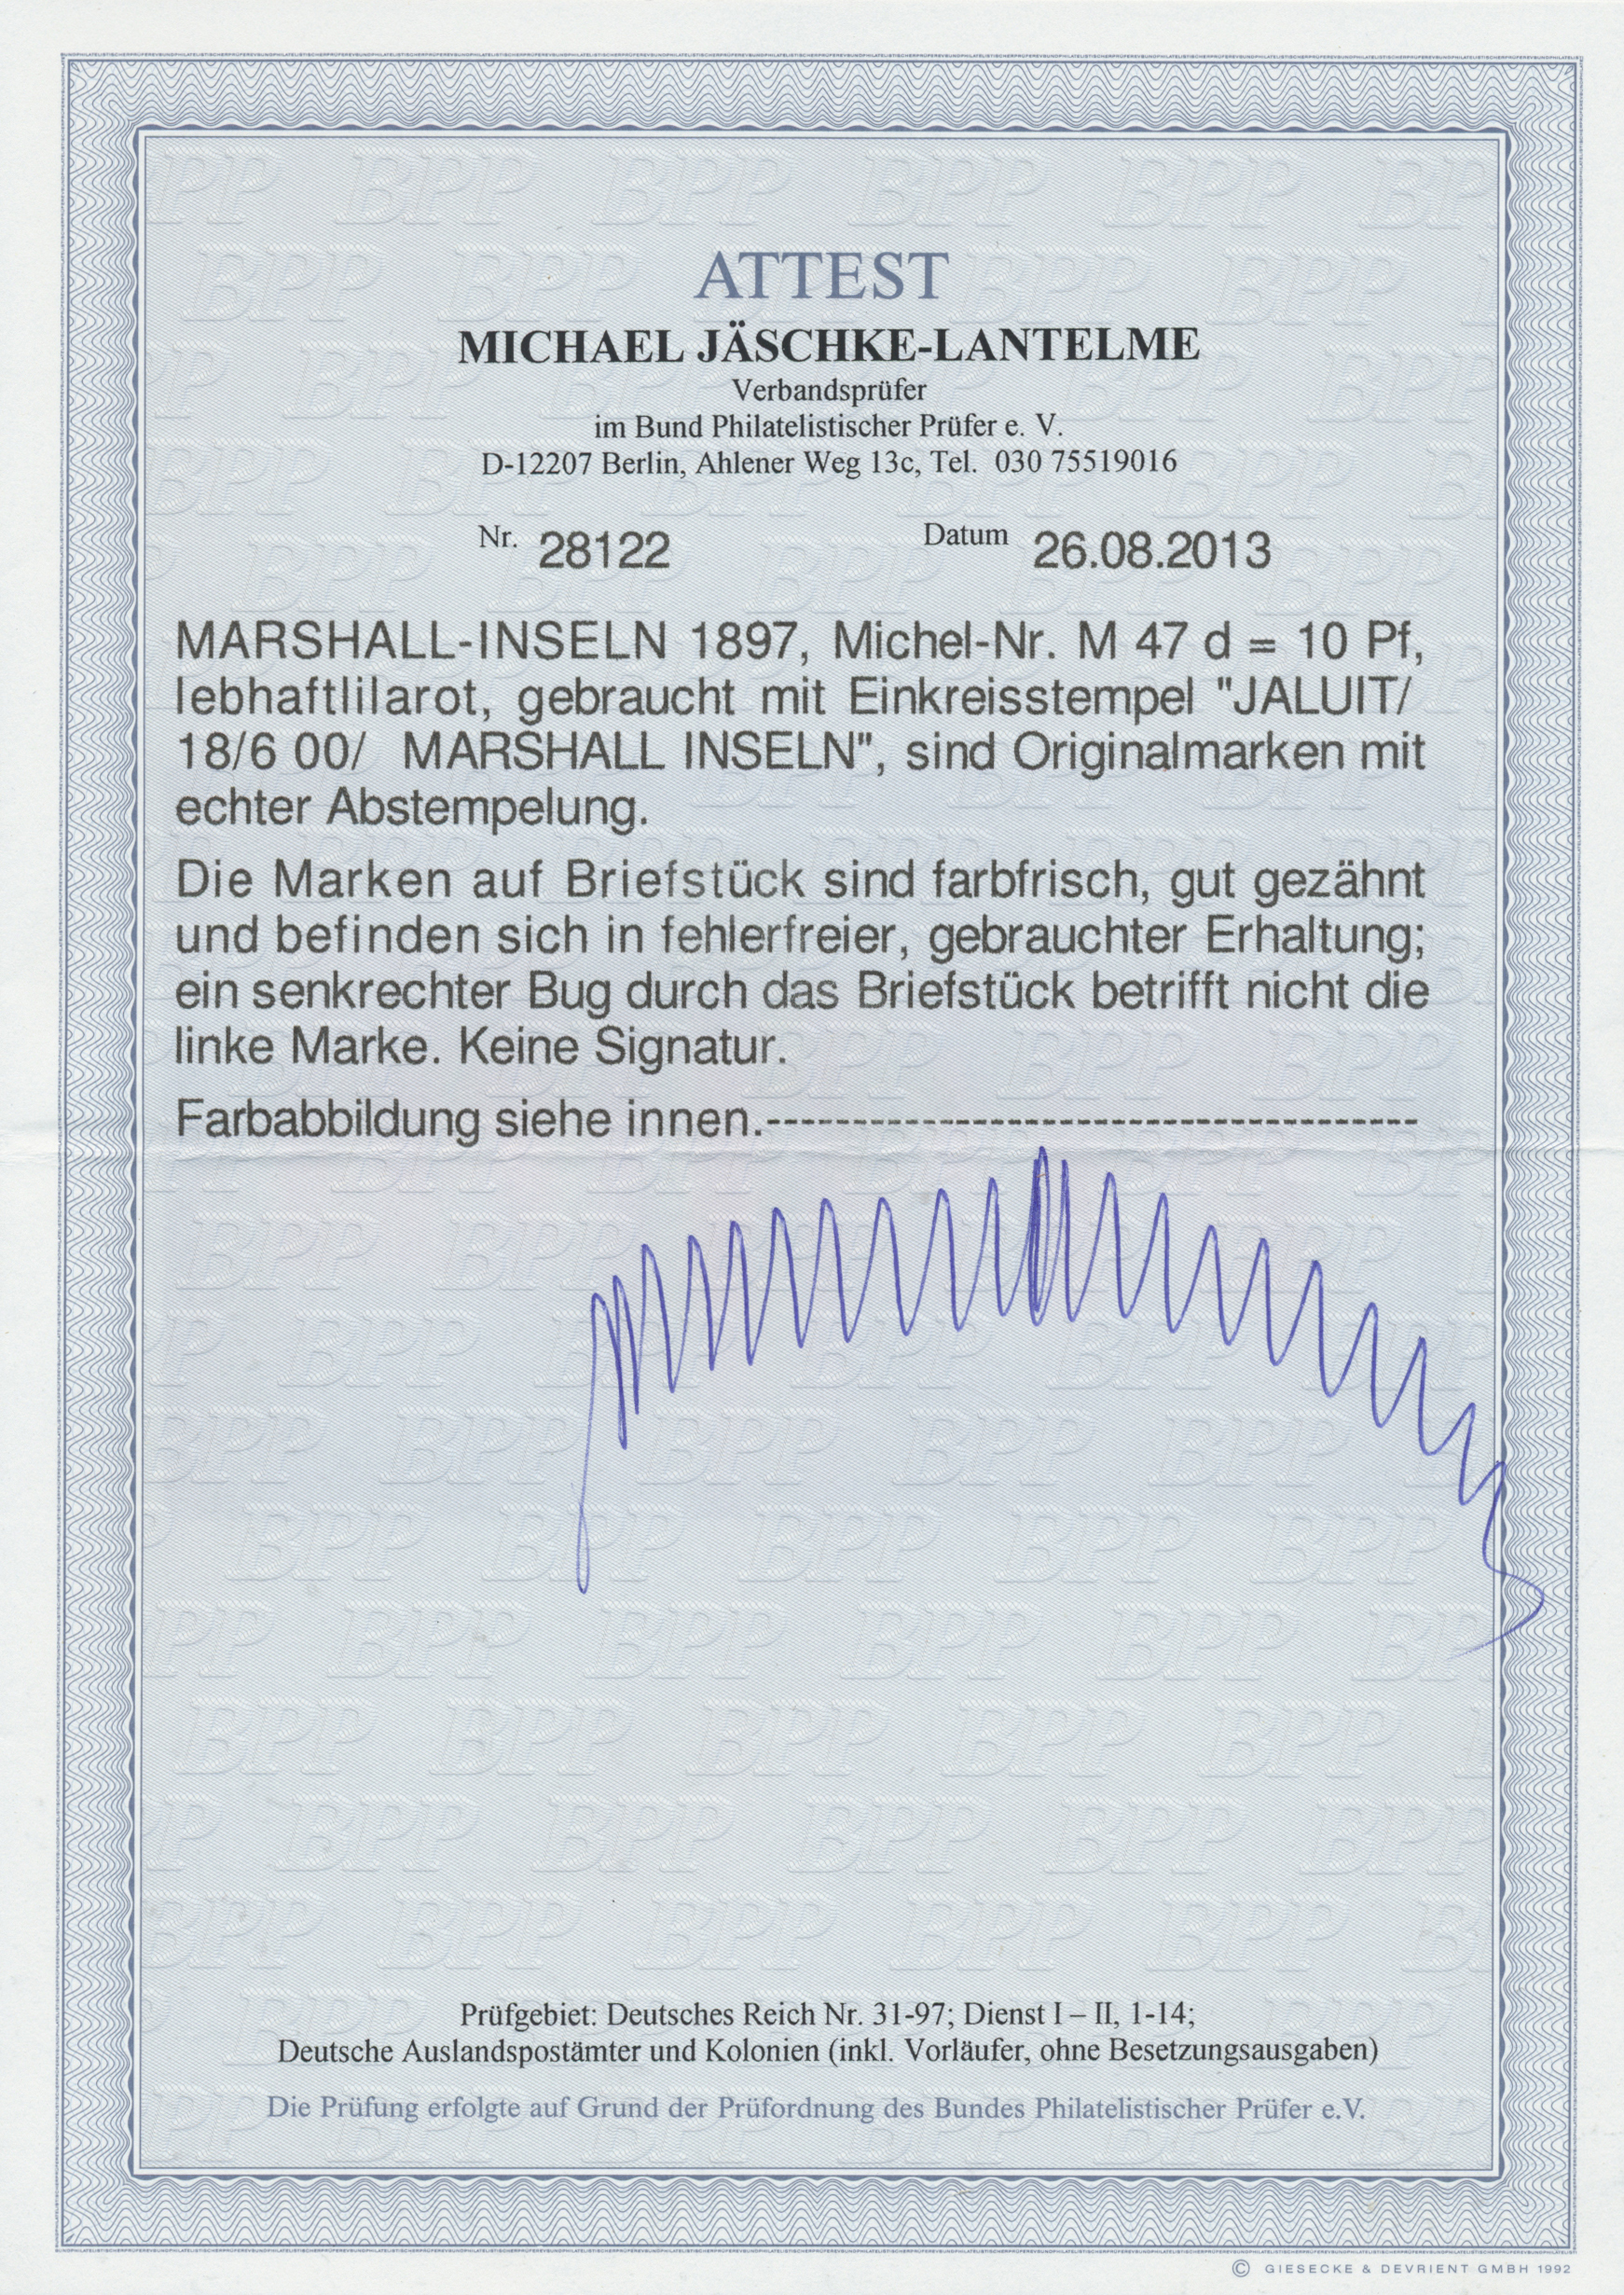 Lot 18758 - Deutsche Kolonien - Marshall-Inseln - Mitläufer  -  Auktionshaus Christoph Gärtner GmbH & Co. KG Auction #40 Germany, Picture Post Cards, Collections Overseas, Thematics